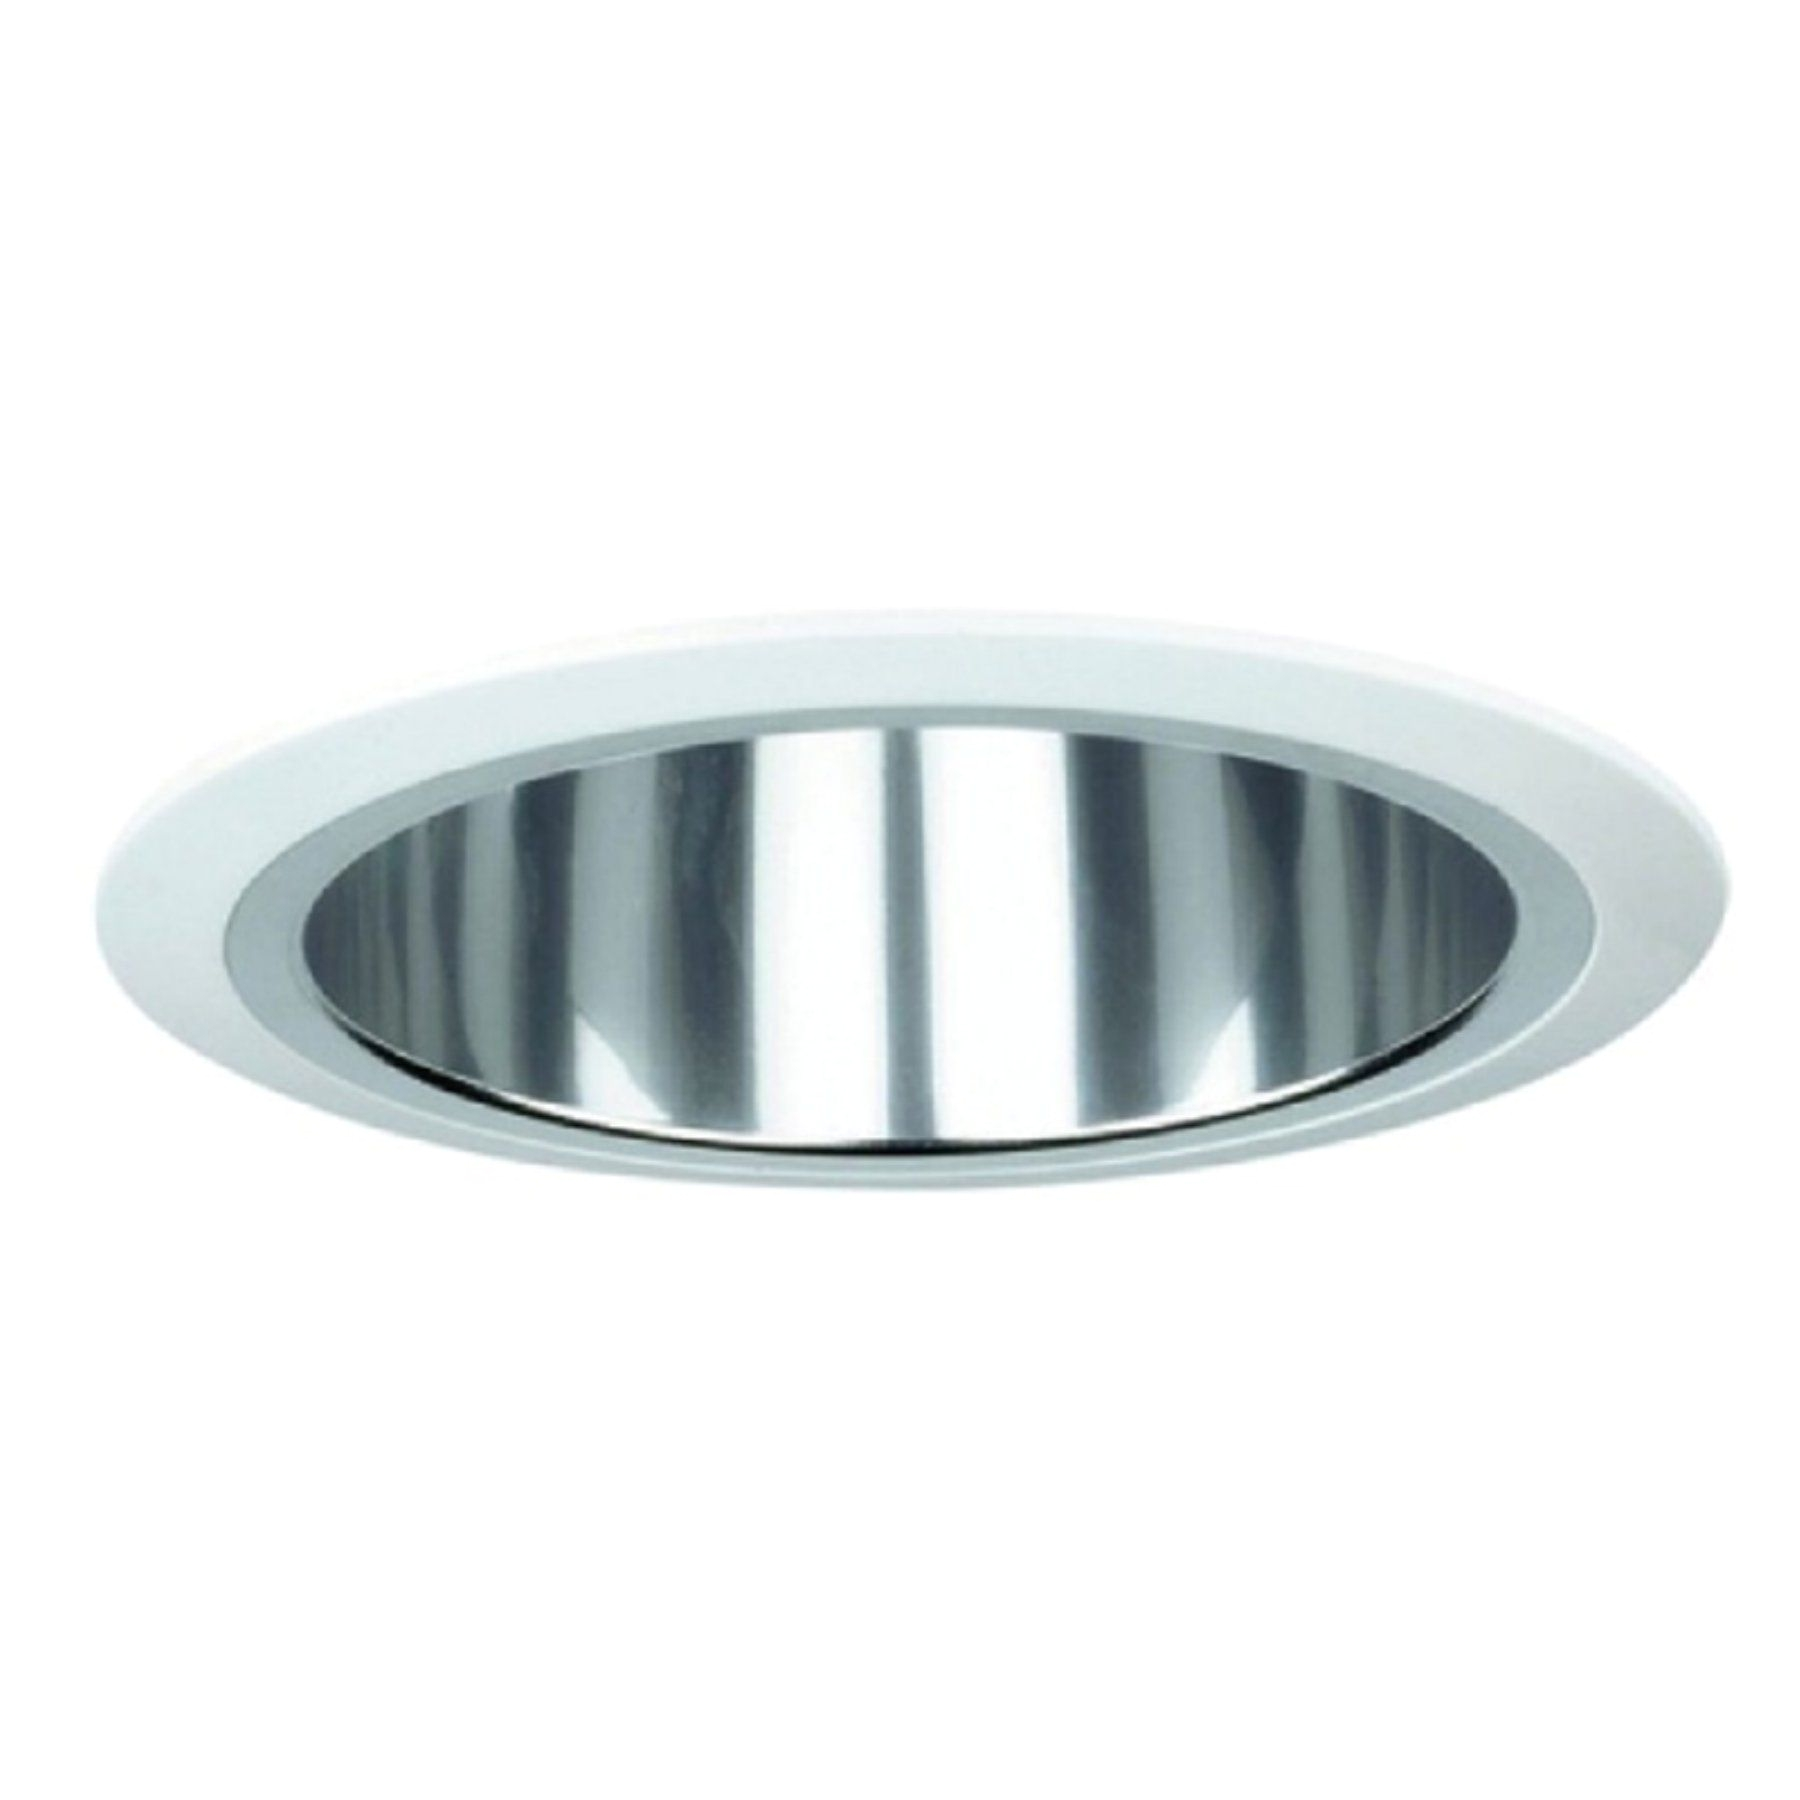 Decorative Recessed Can Light Covers Yosemite Home Decor He5609t Recessed Light Reflector Trim He5609t